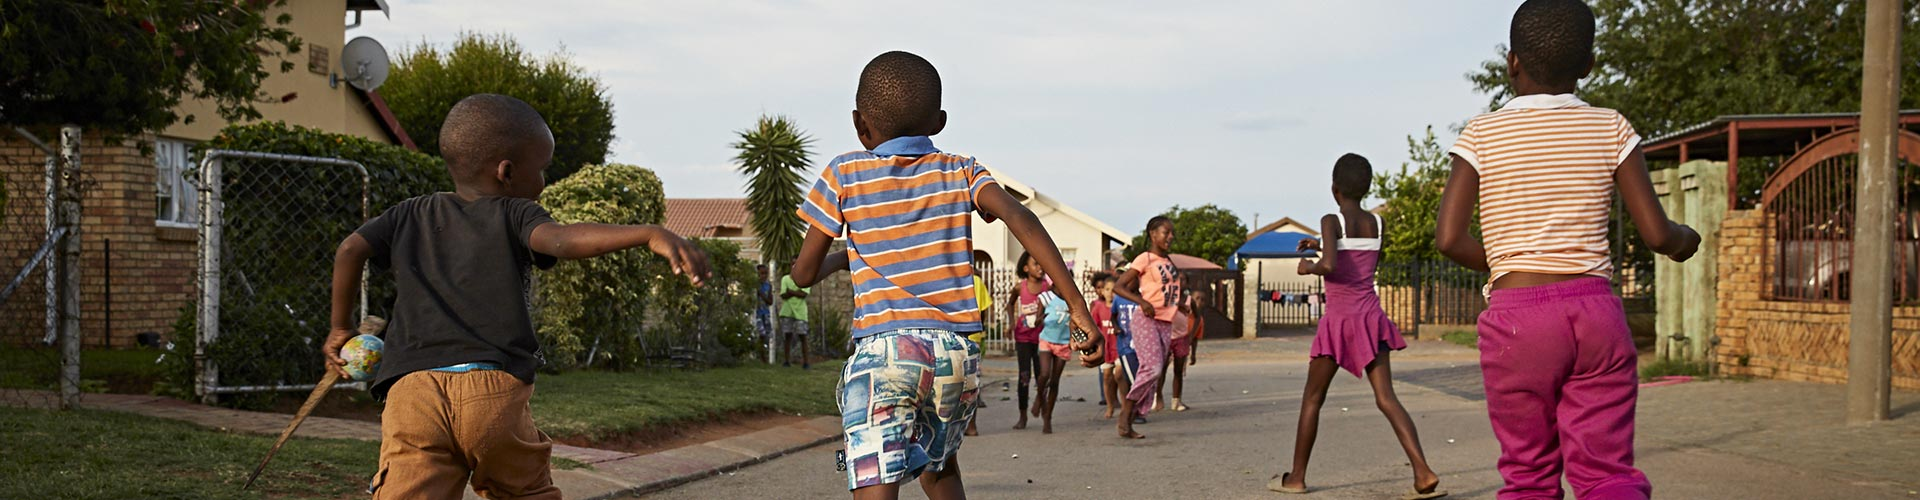 SOS Kinderdörfer – South Africa, Rustenburg